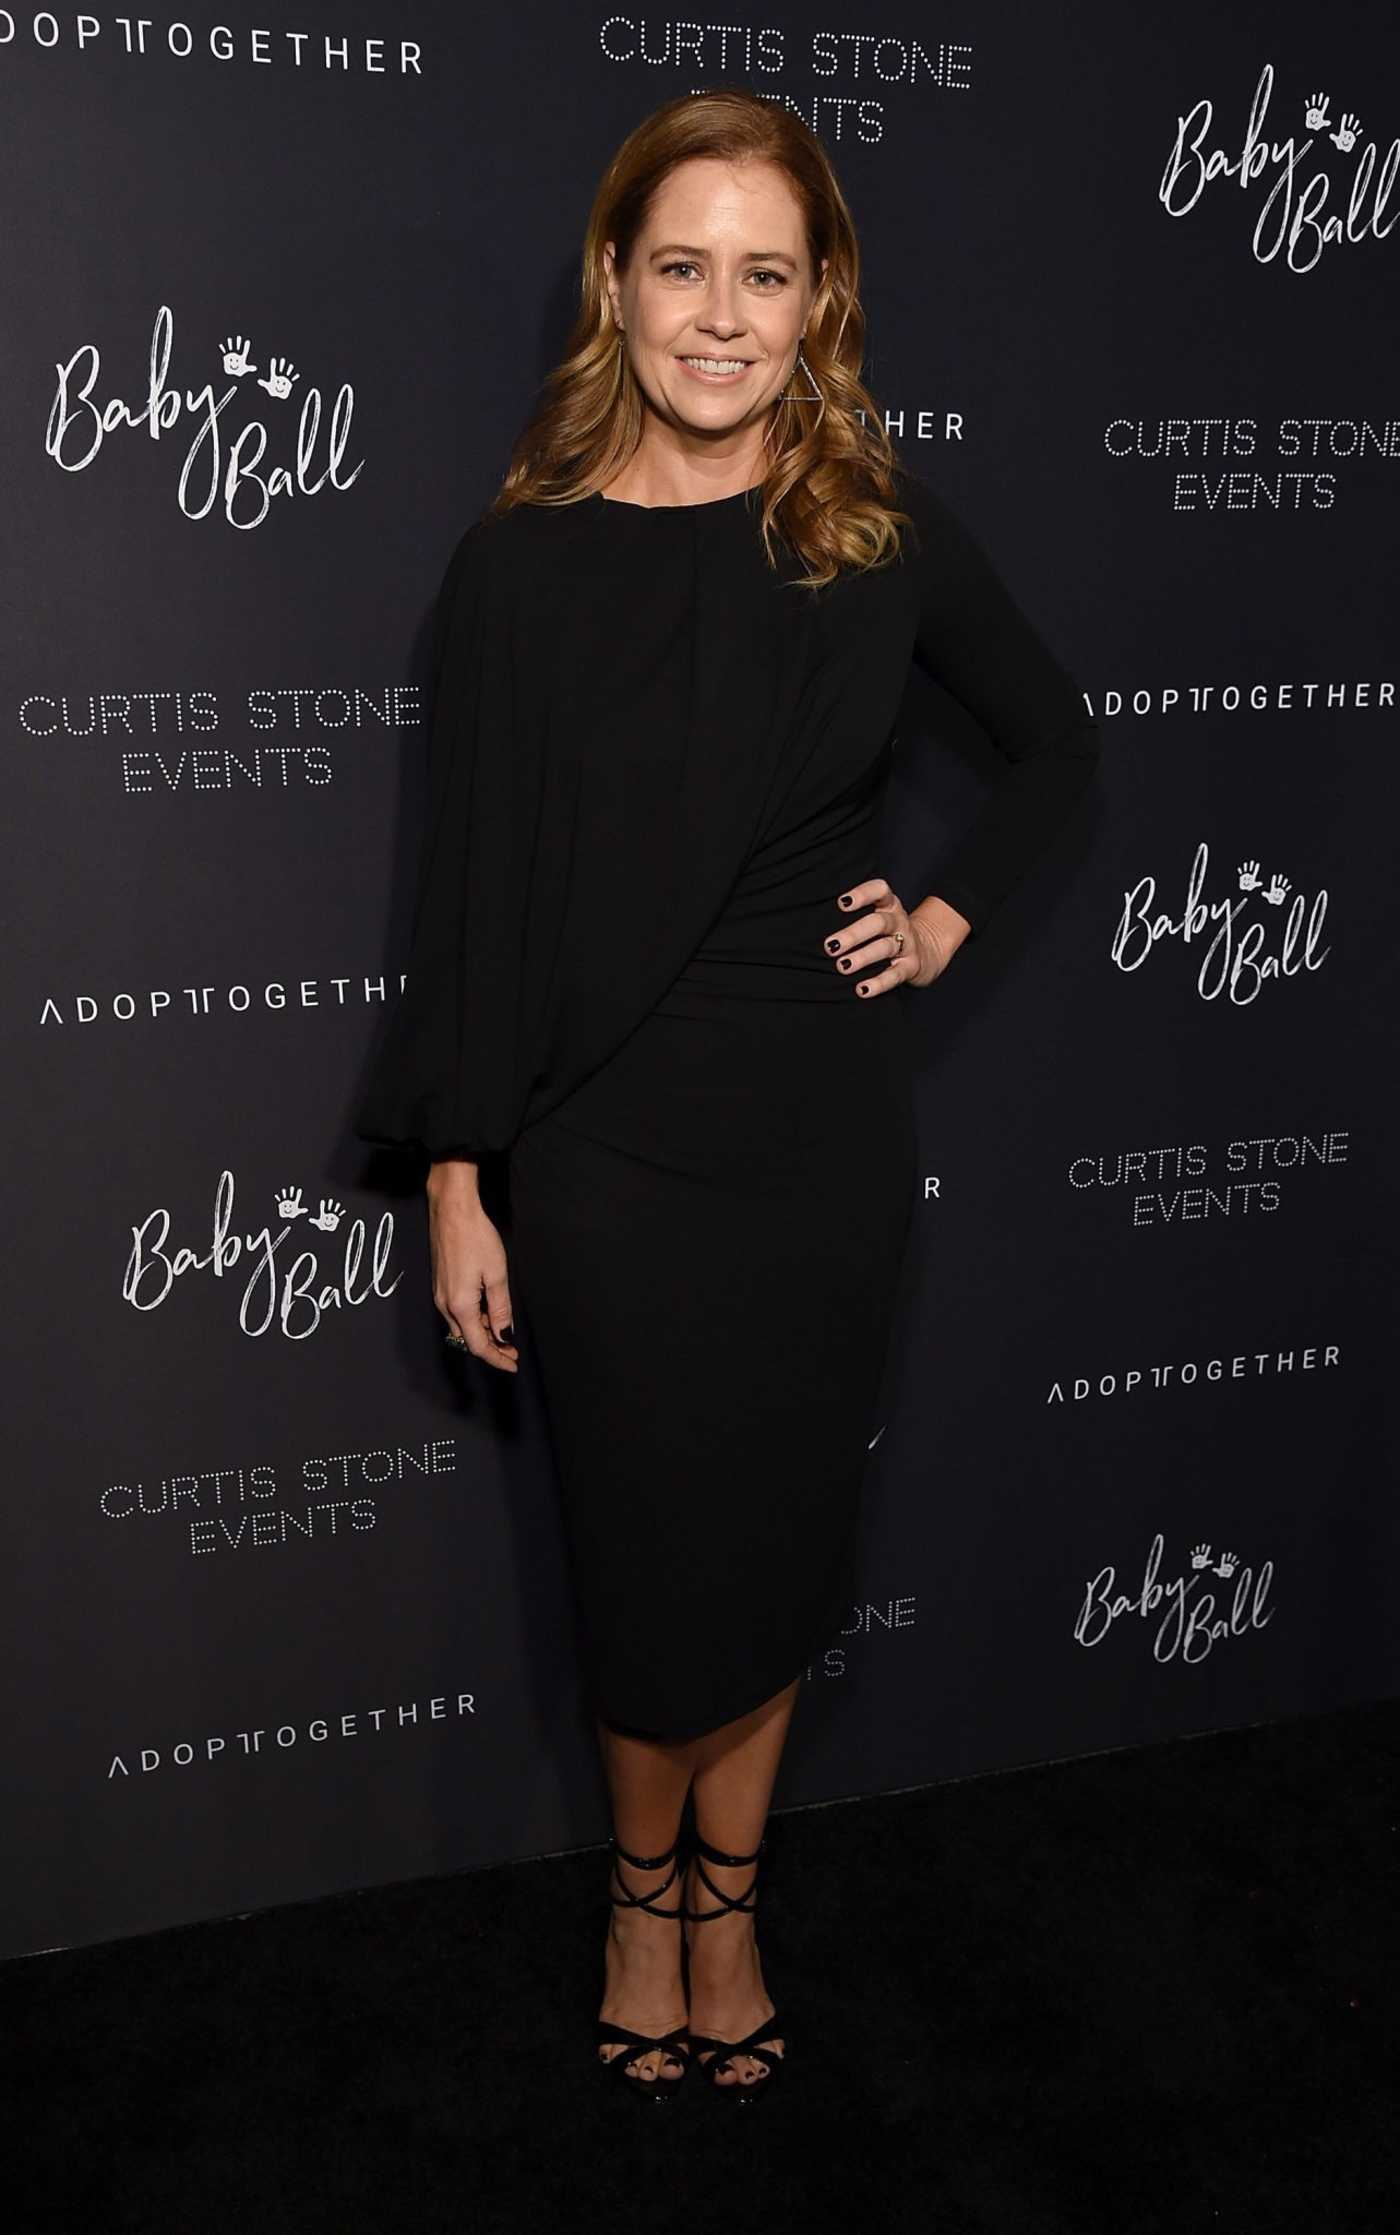 Jenna Fischer Attends the 4th Adopt Together Baby Ball Gala in Los Angeles 10/19/2018